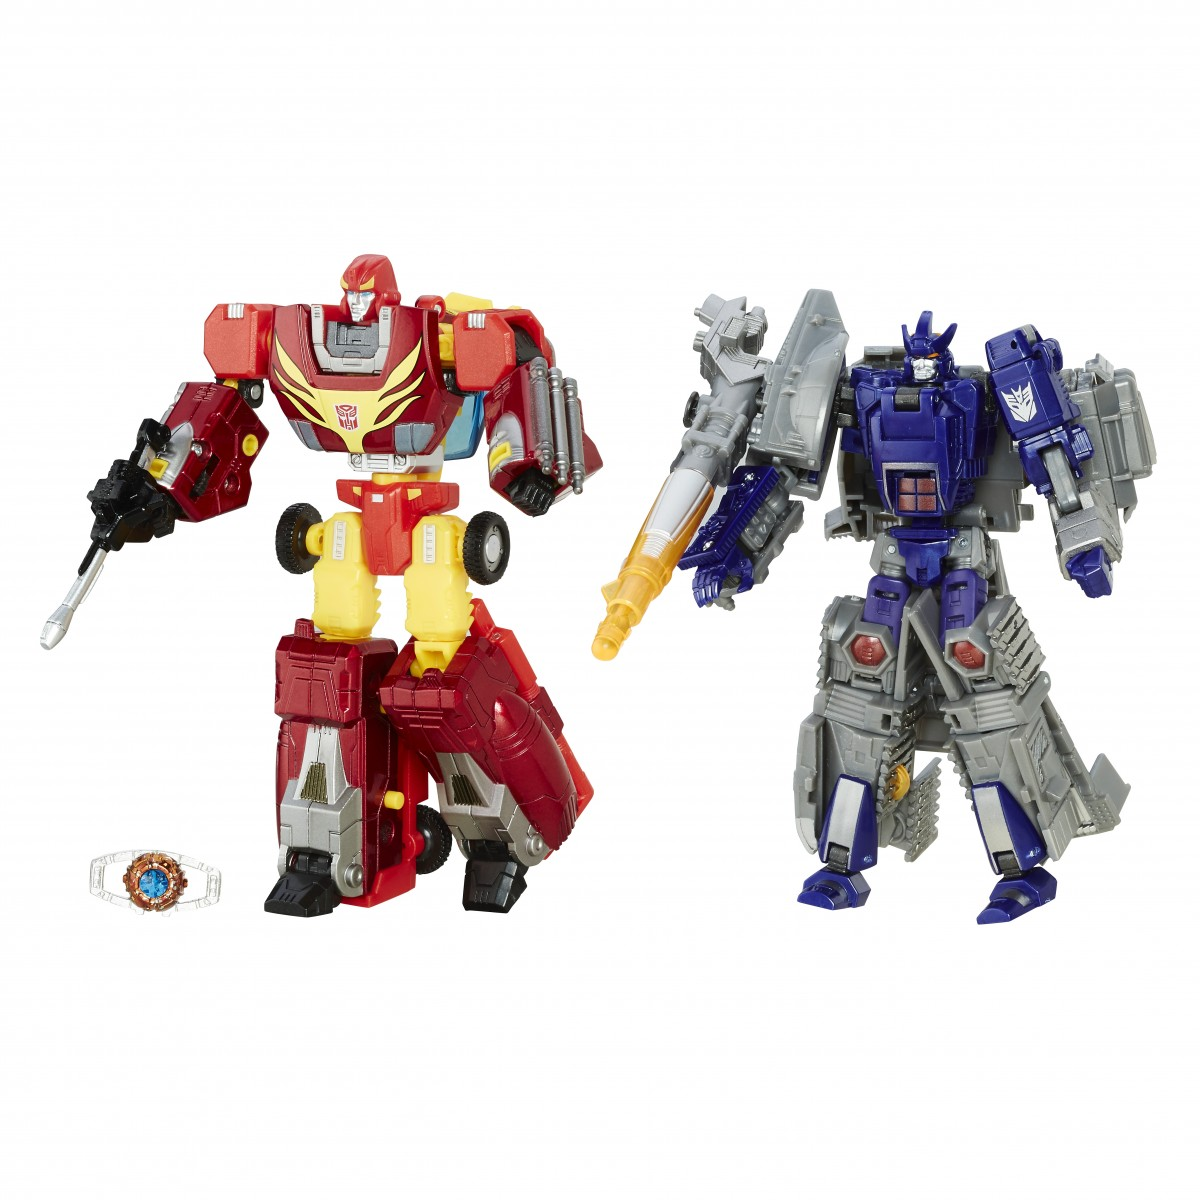 Transformers News: More Images - Platinum Edition Rise of Rodimus Prime Set